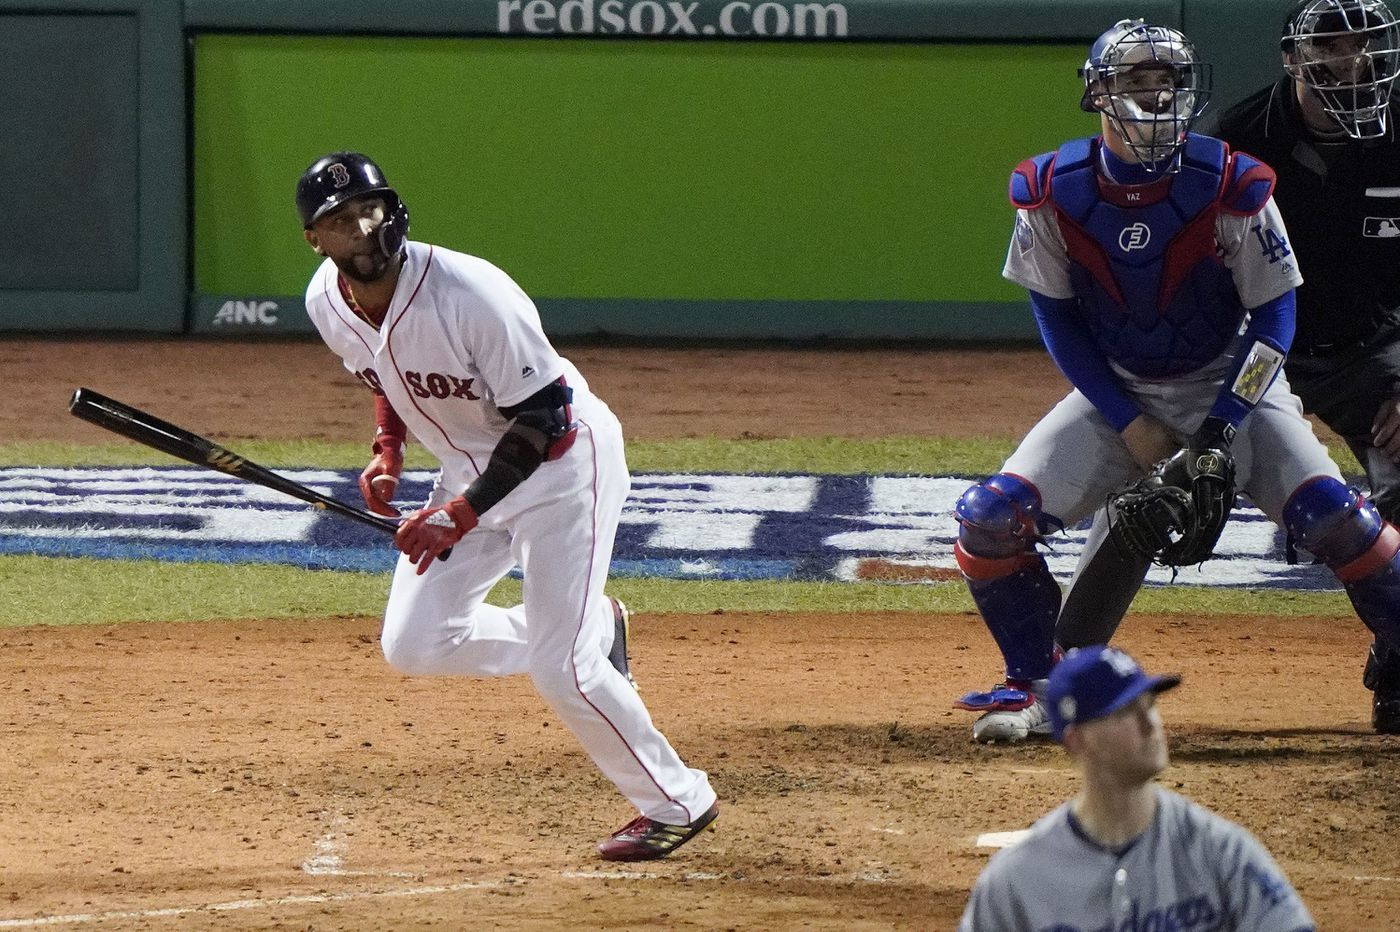 Red Sox beat Dodgers, 8-4, at Fenway in World Series opener